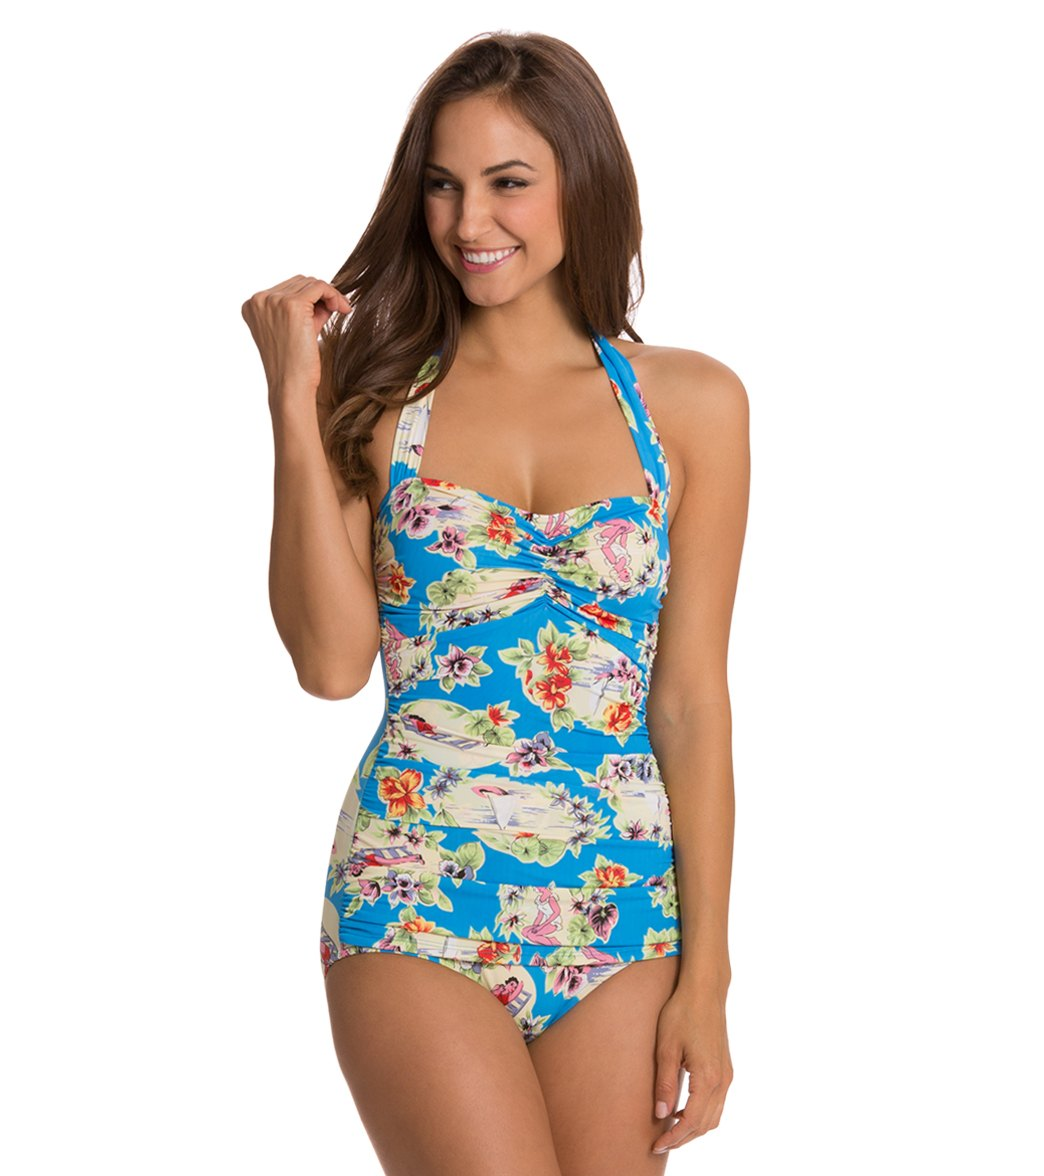 Esther Williams Swimwear - Fruity Suity One-piece Swimsuit In White - Lyst